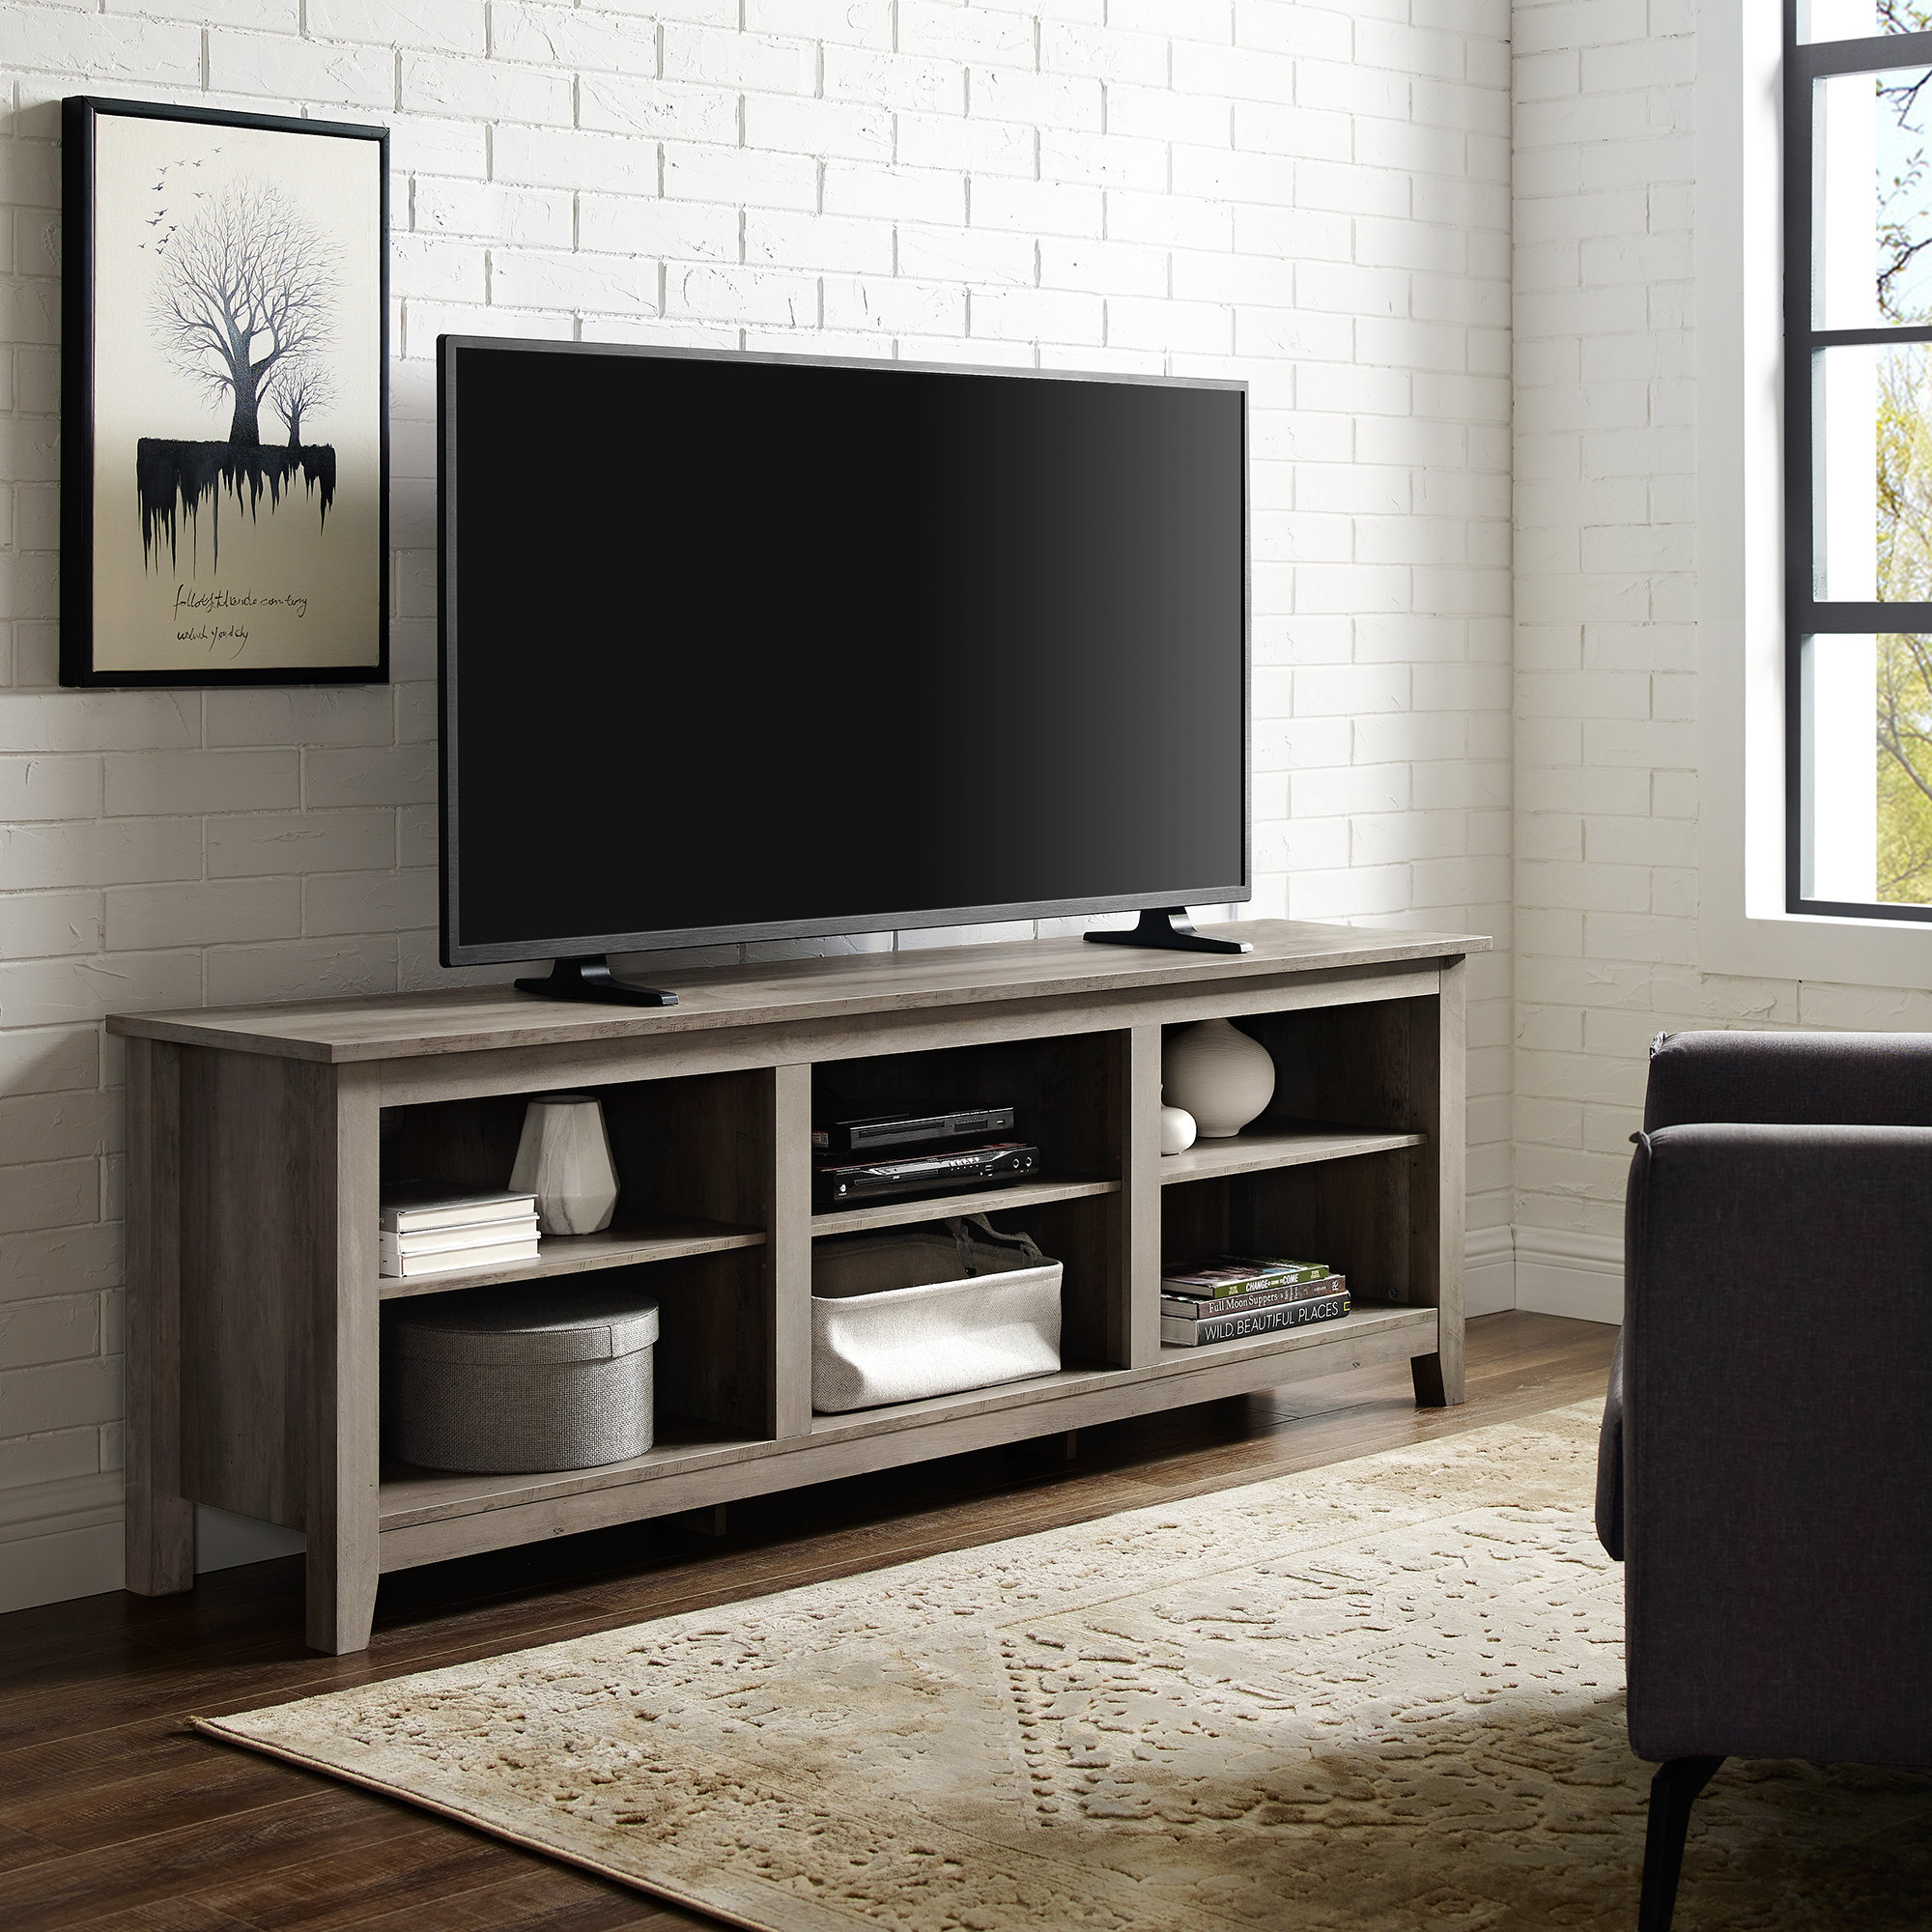 Tv Stands You'll Love | Wayfair (View 12 of 30)